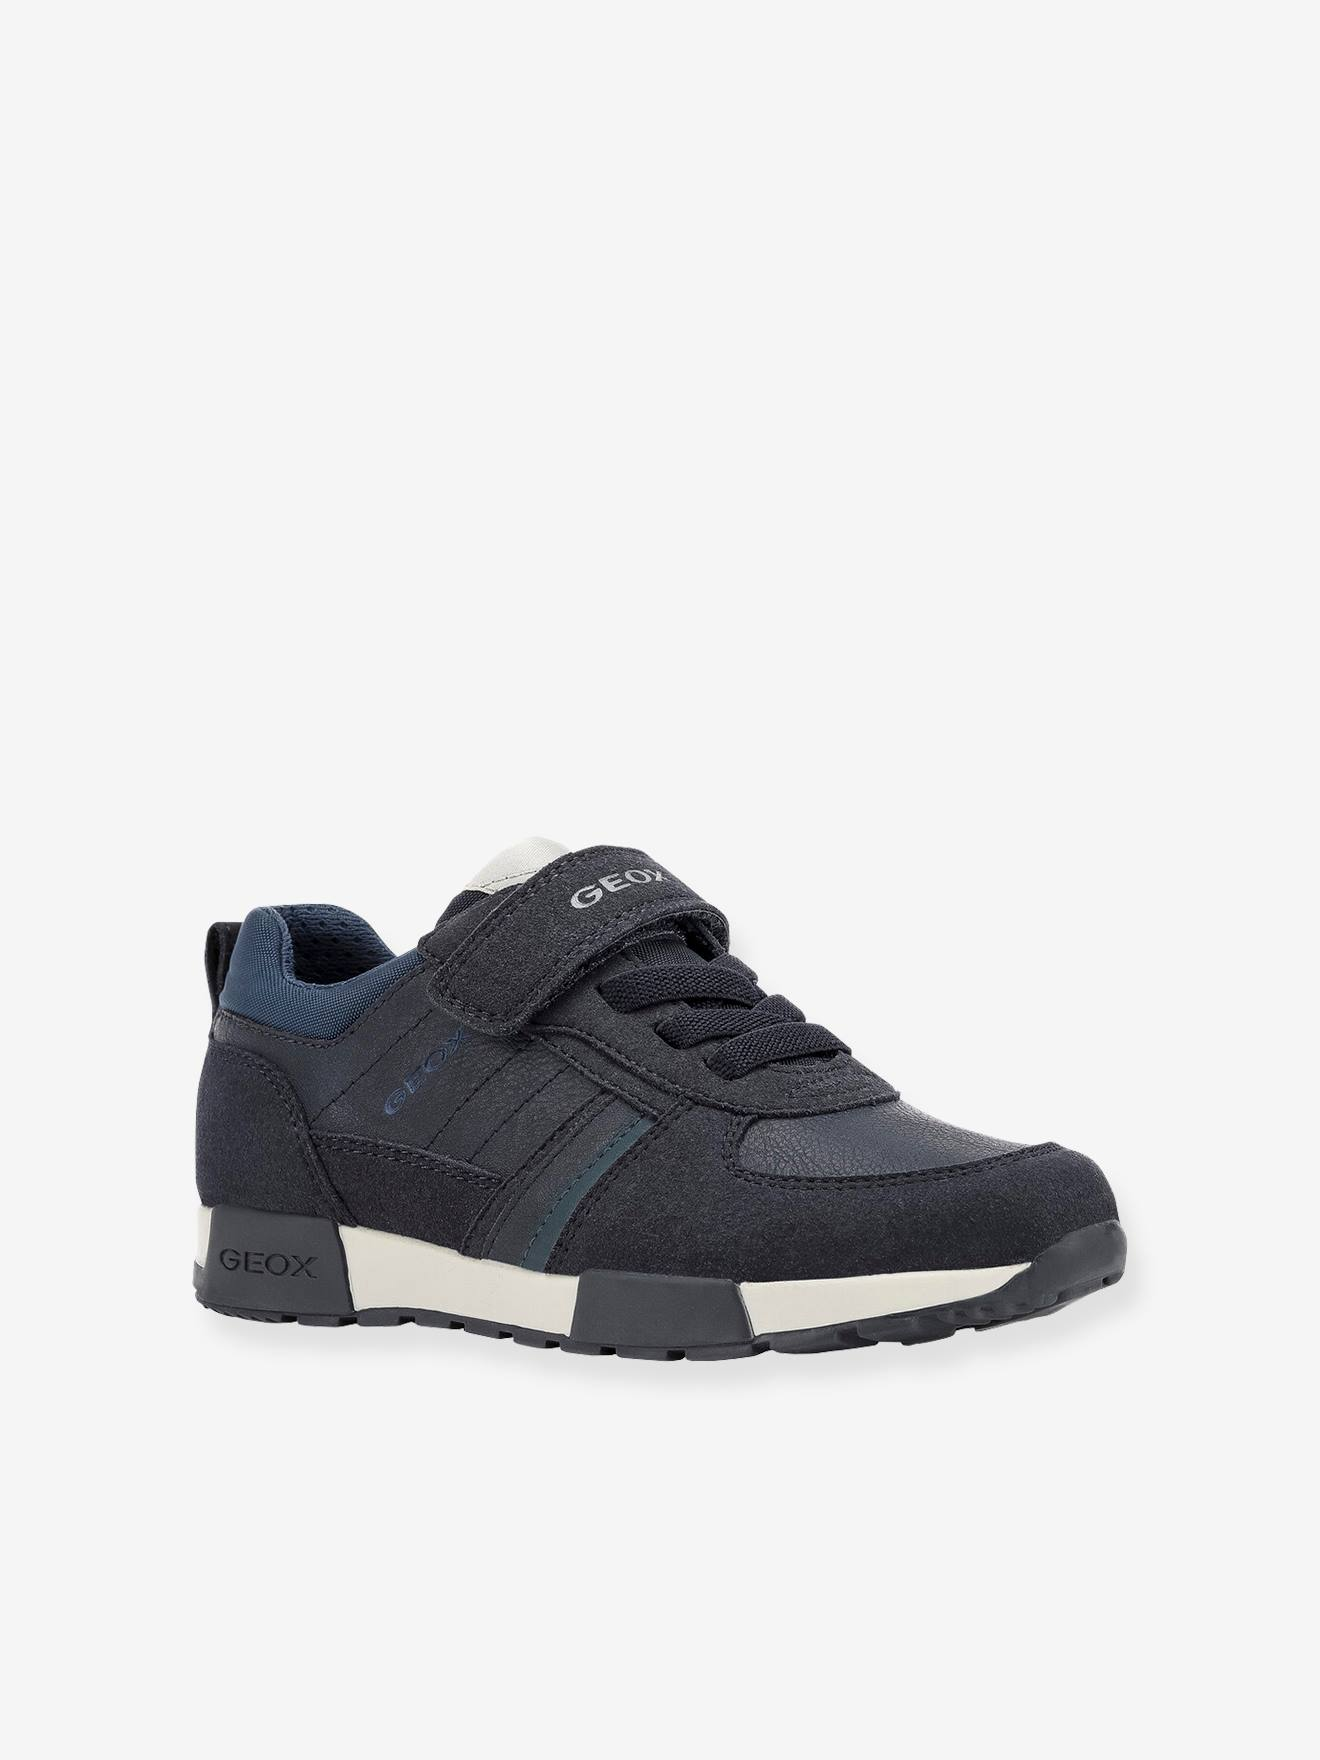 J Alfier Boy A Trainers, for Boys, by